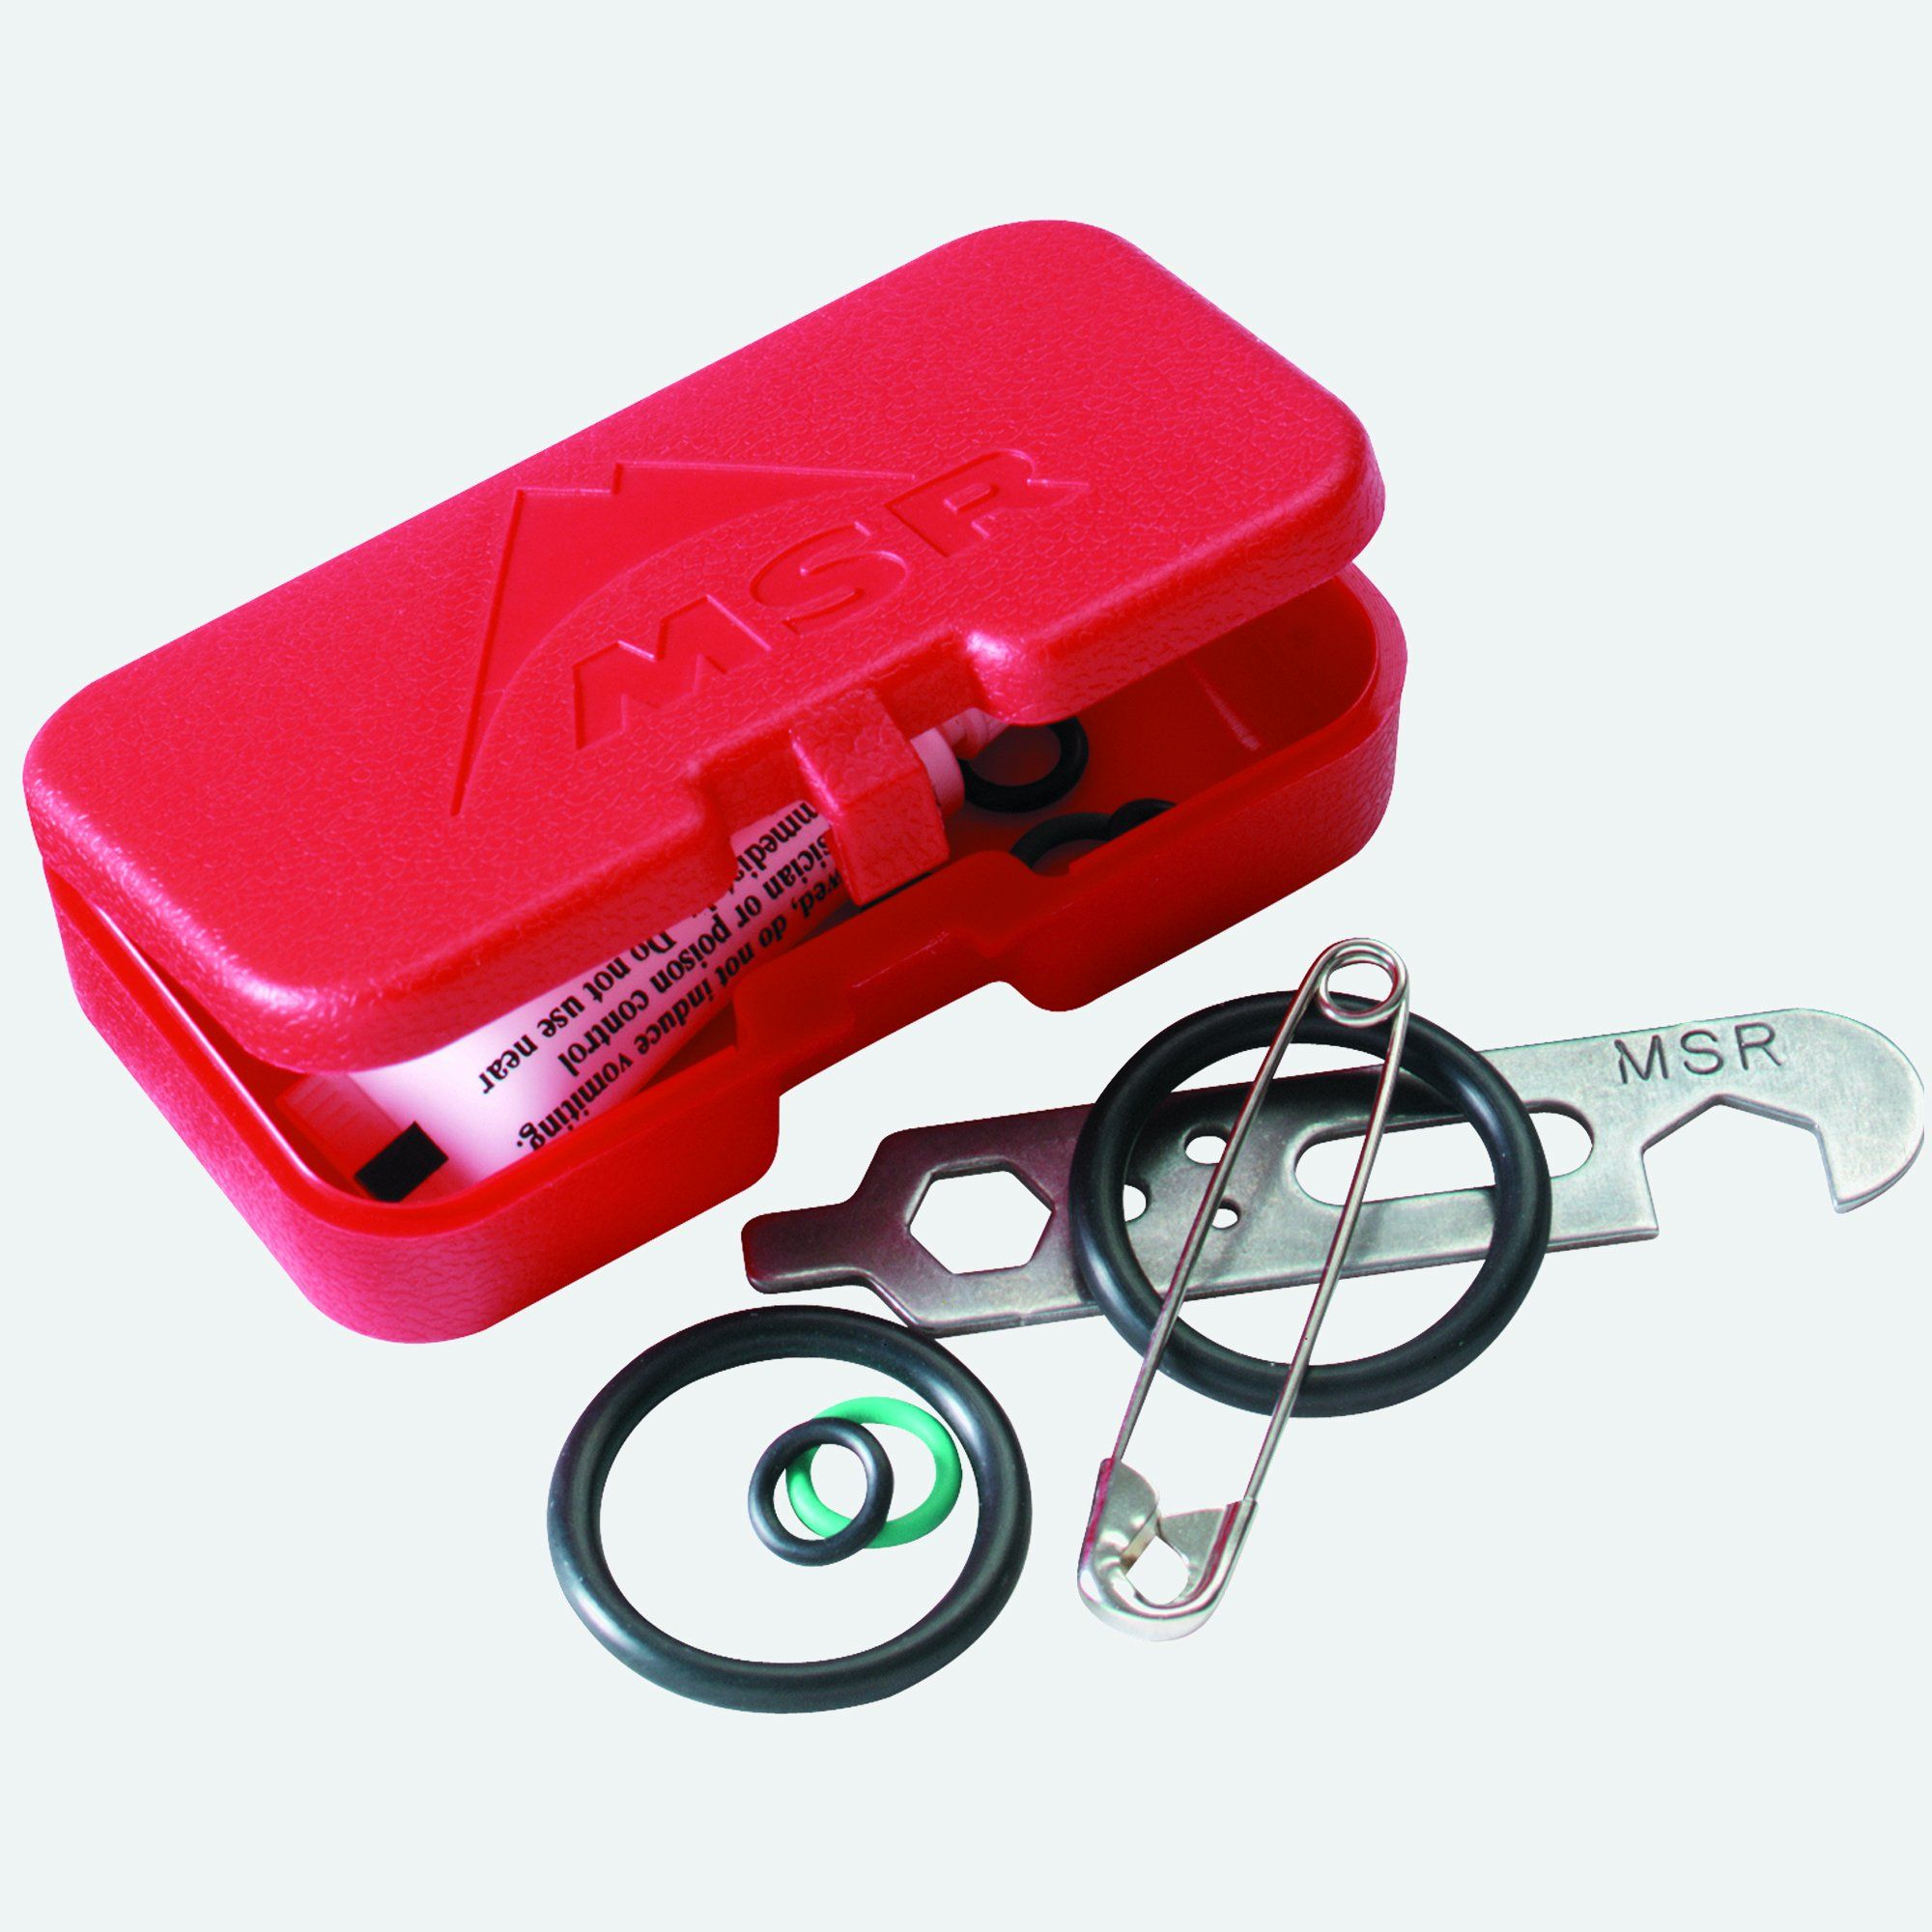 MSR Annual Maintance Kit